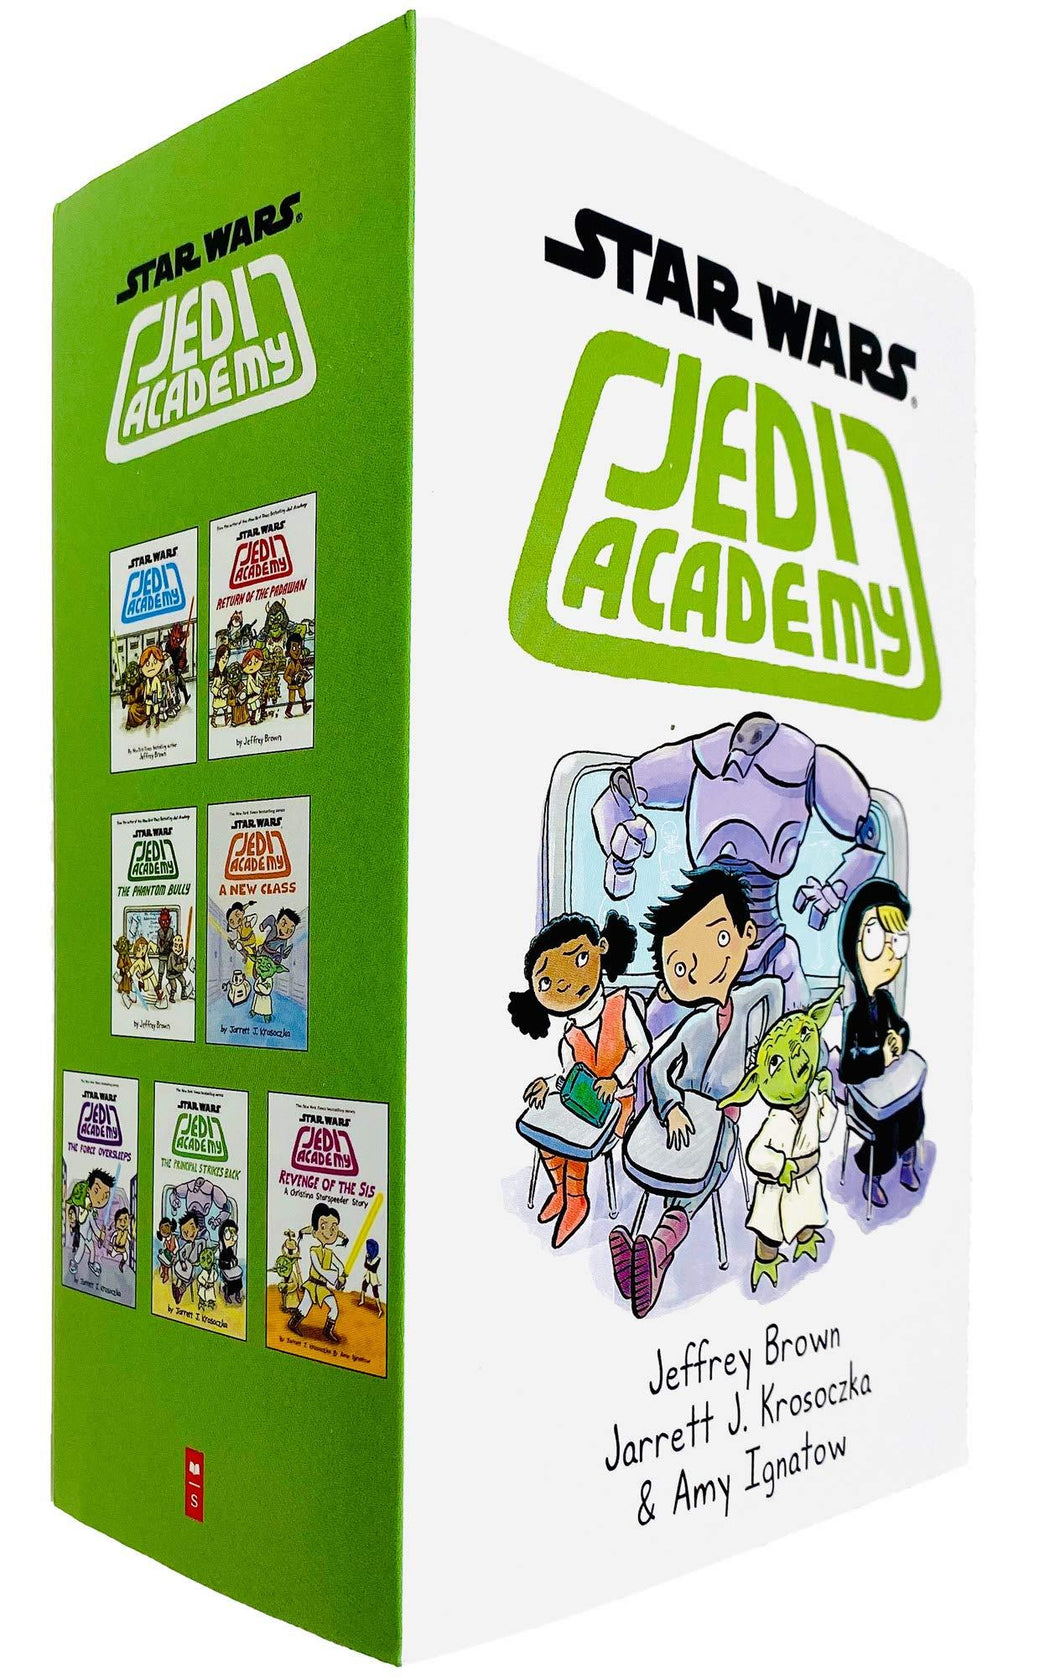 Star Wars Jedi Academy 7 Books Collection - Ages 9-14 - Paperback - Jeffrey Brown & Jarrett J. Krosoczka